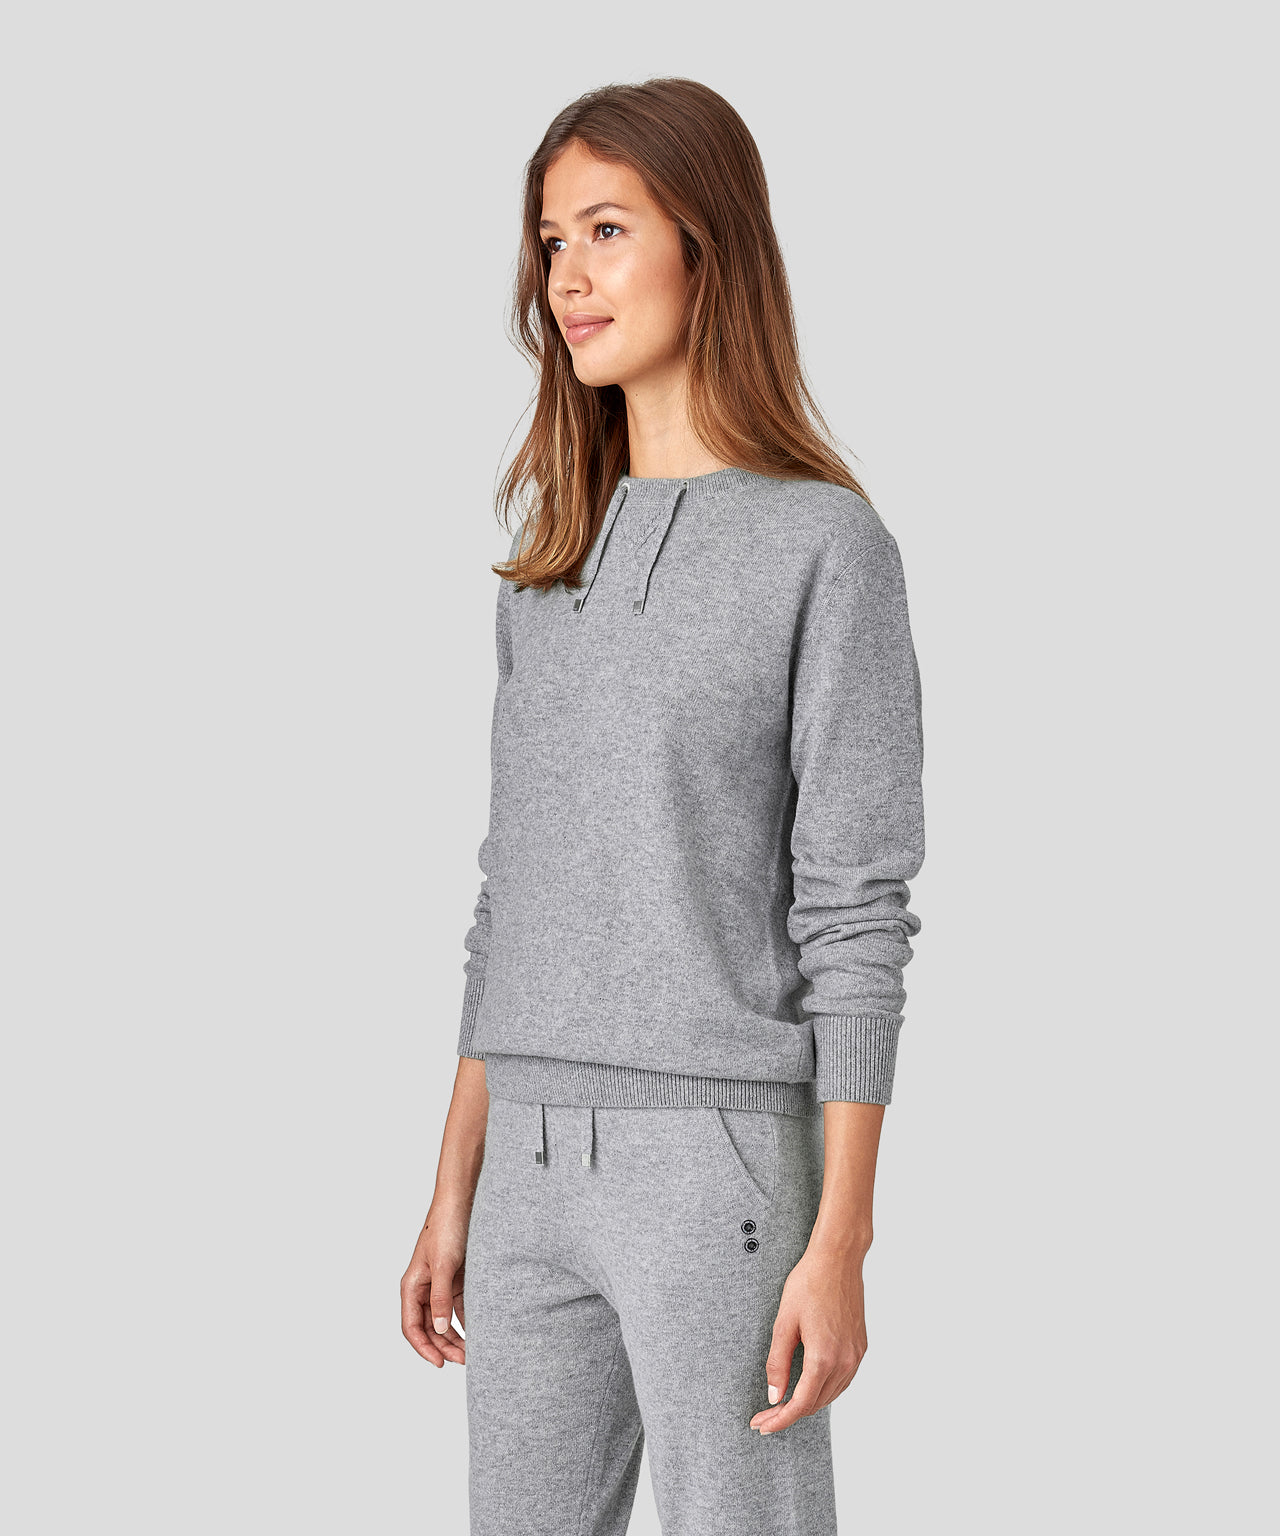 Cashmere Drawstring His For Her - grey melange